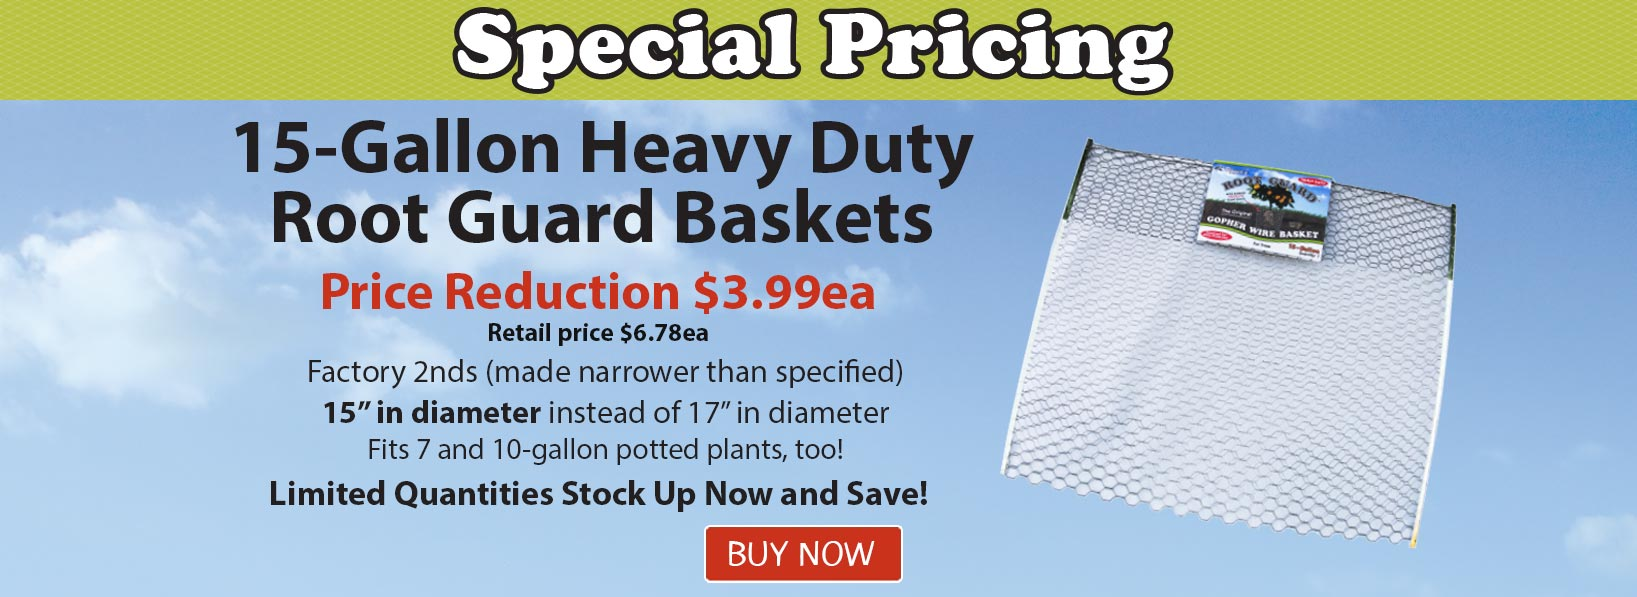 Root Guard Heavy Duty Baskets Special